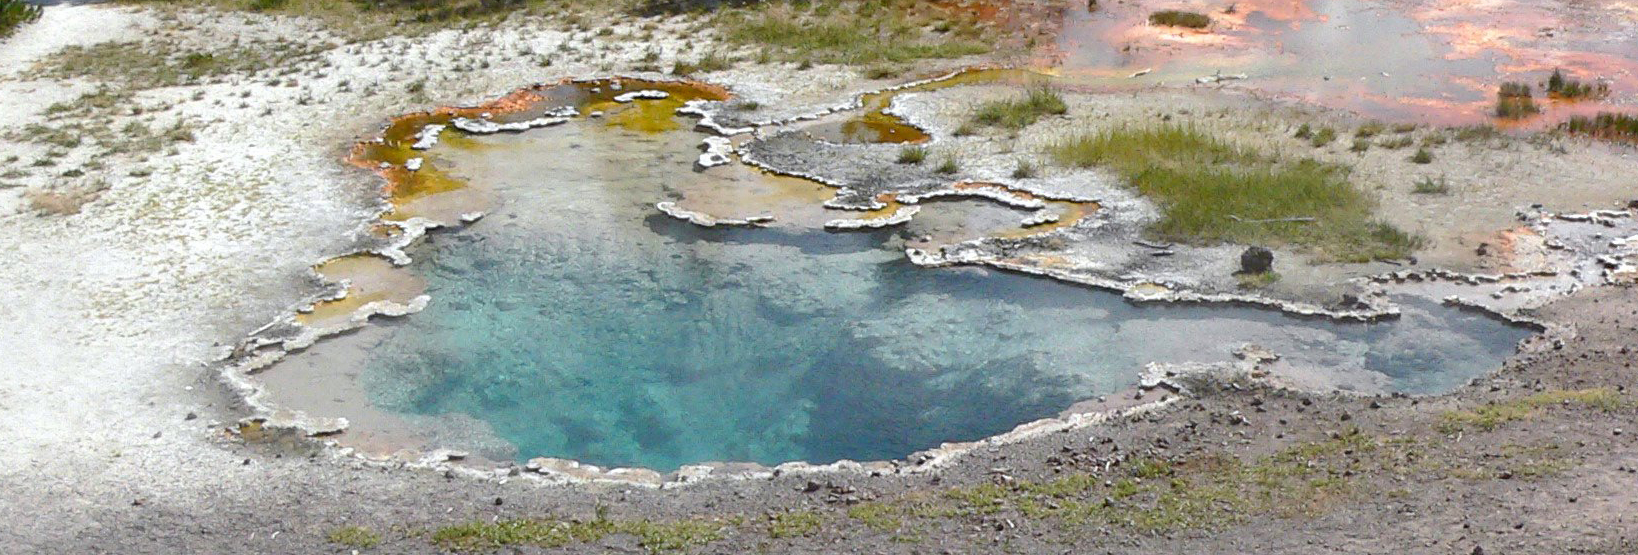 Octopus Spring in Yellowstone National Park. Credit: David Strong, Penn State University Image credit: None